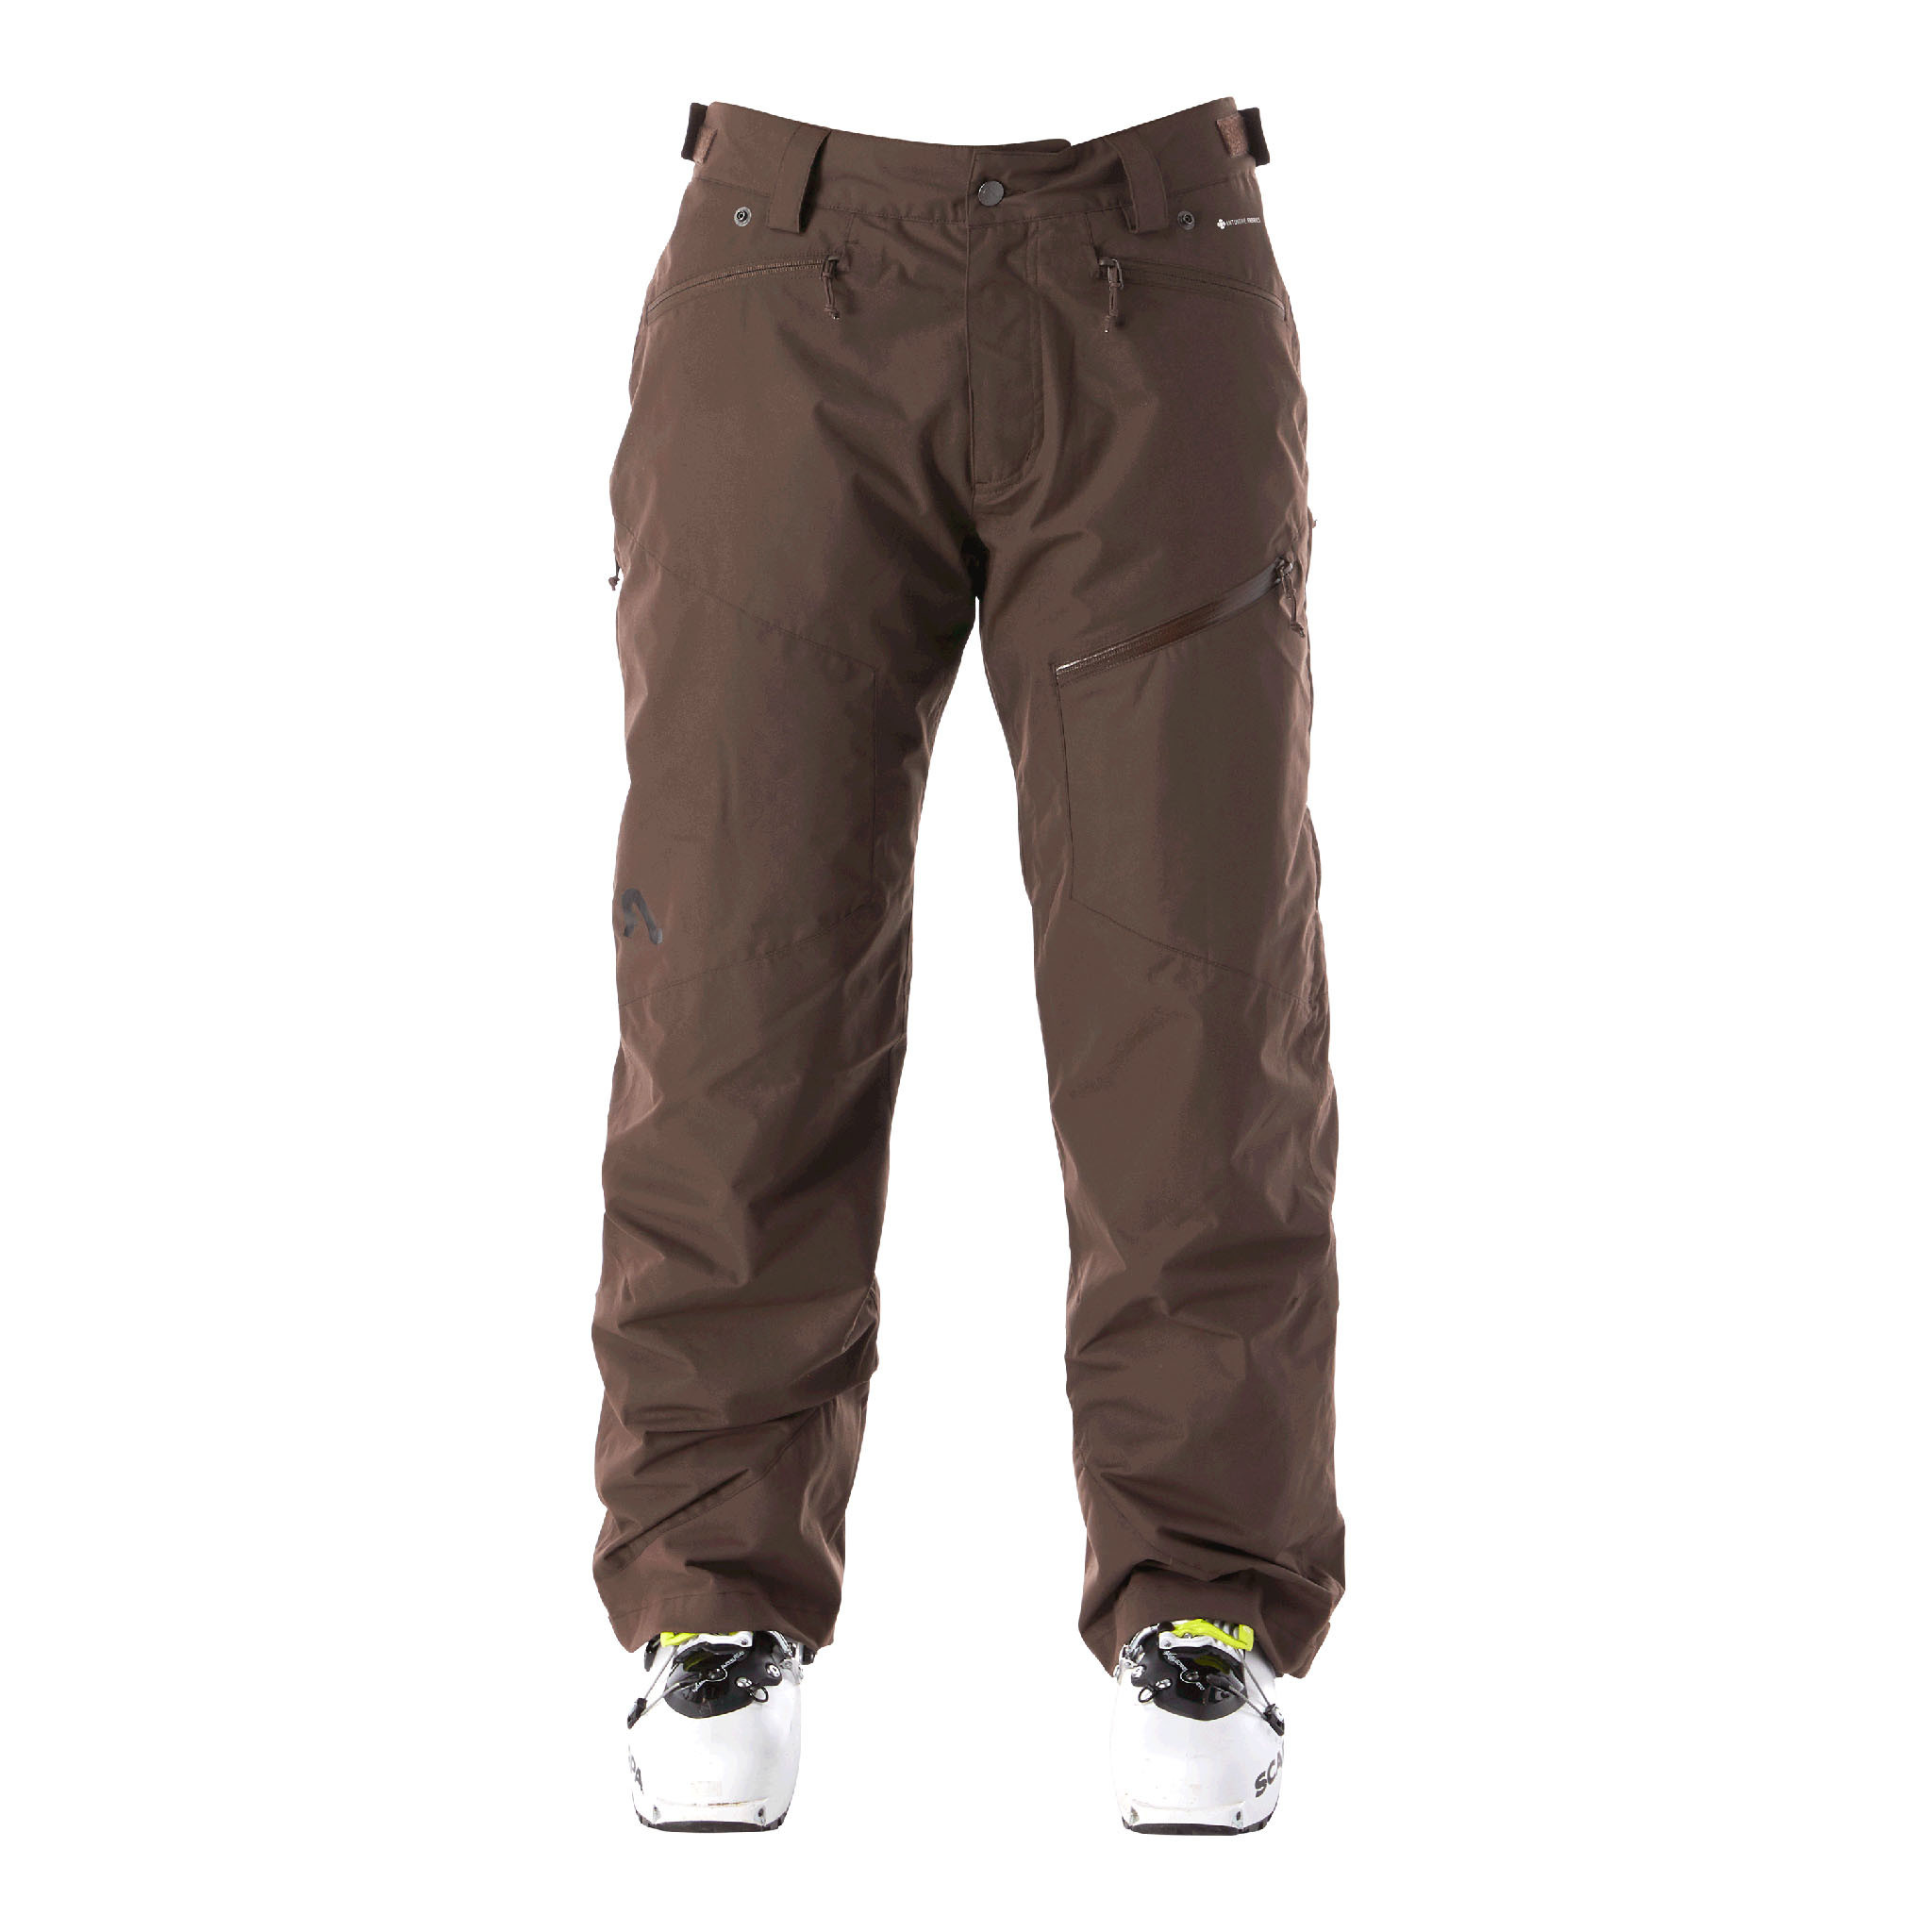 FlyLow Men's Snowman Insulated Pant 2019/2020